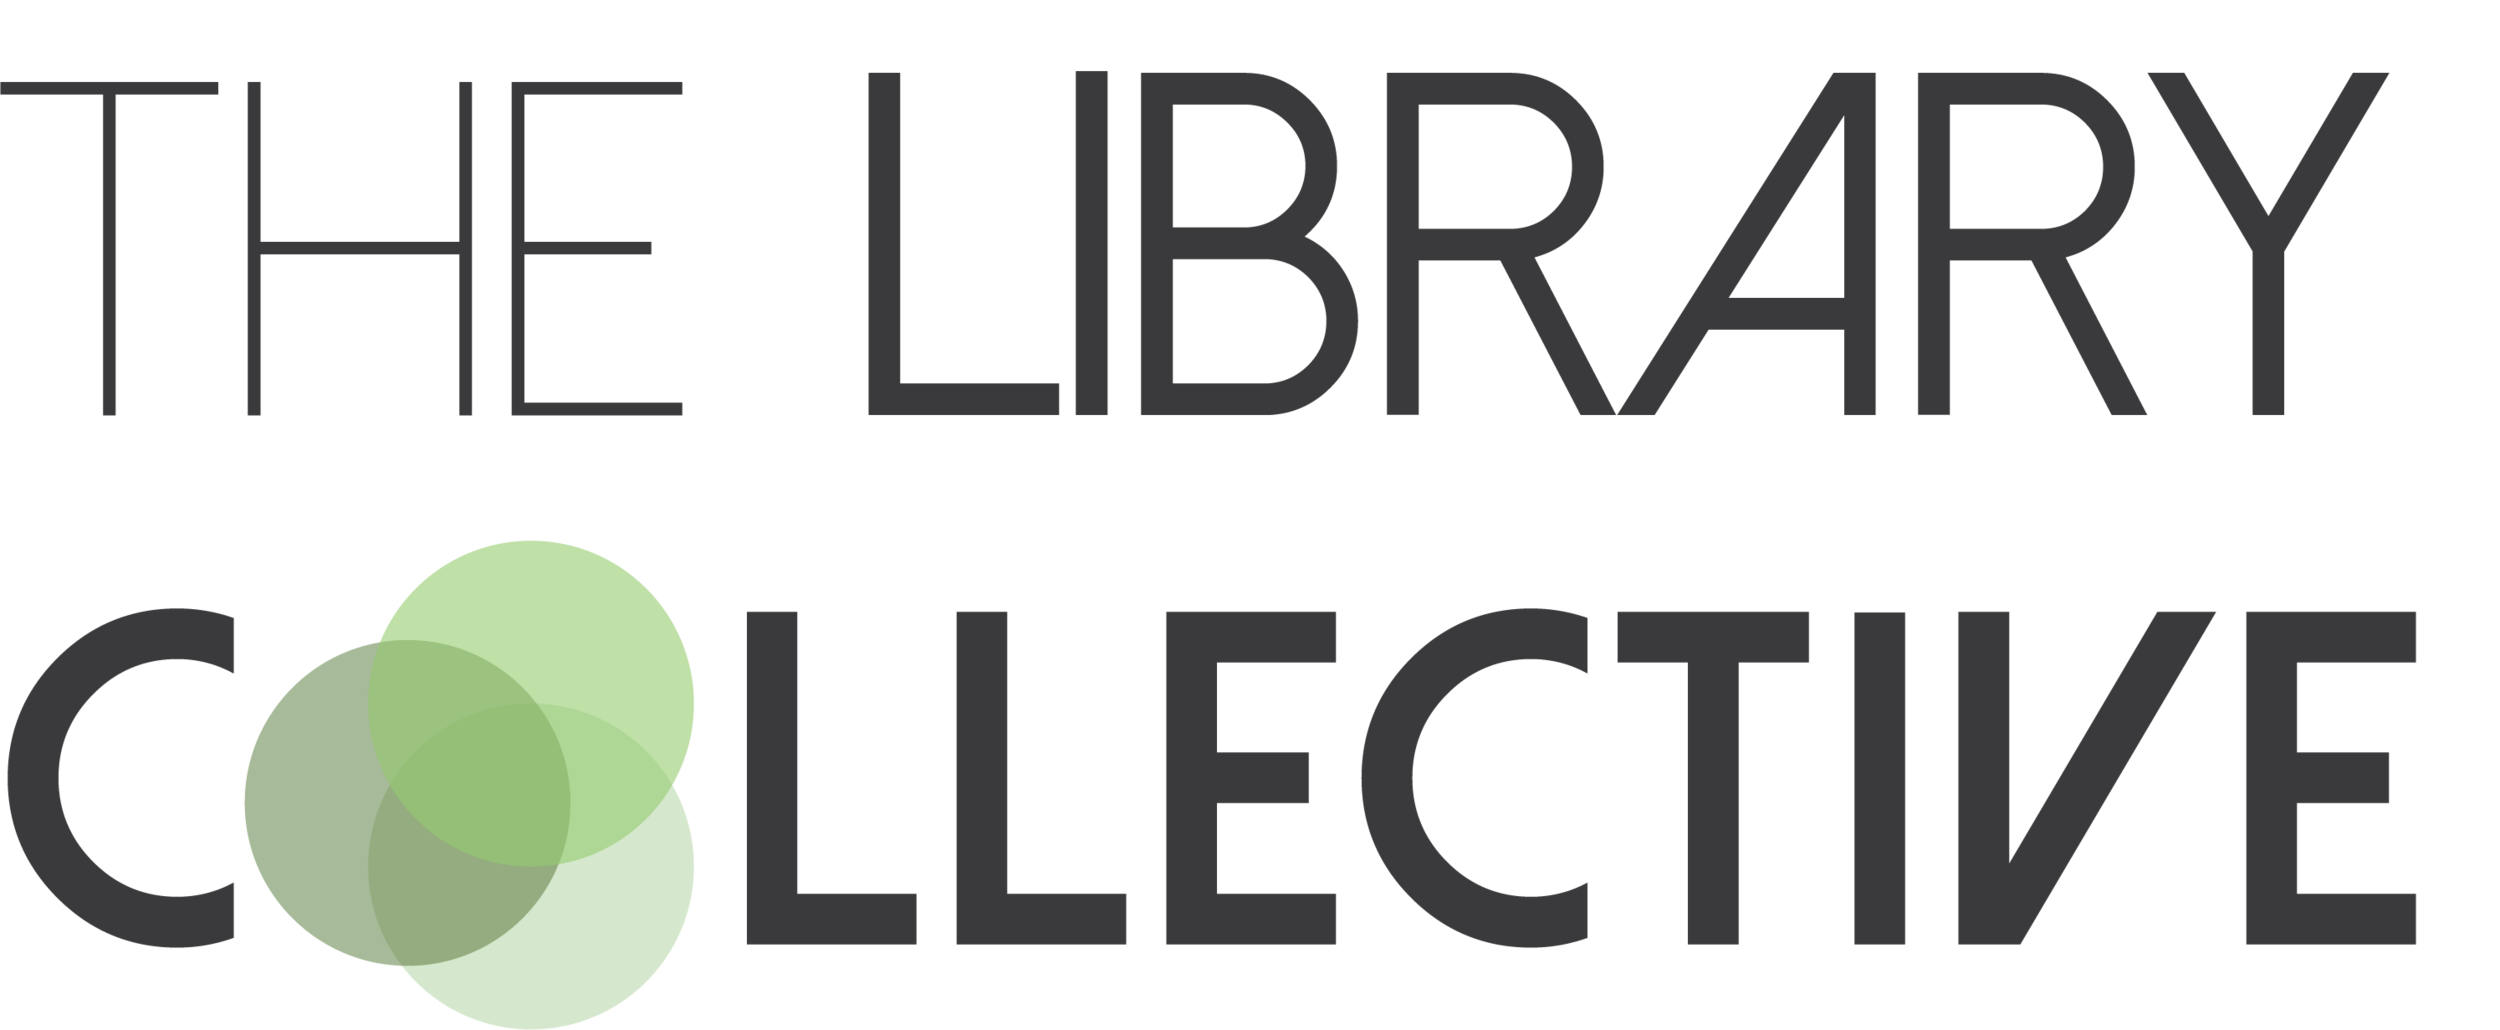 libcol-logowithouttagline.png